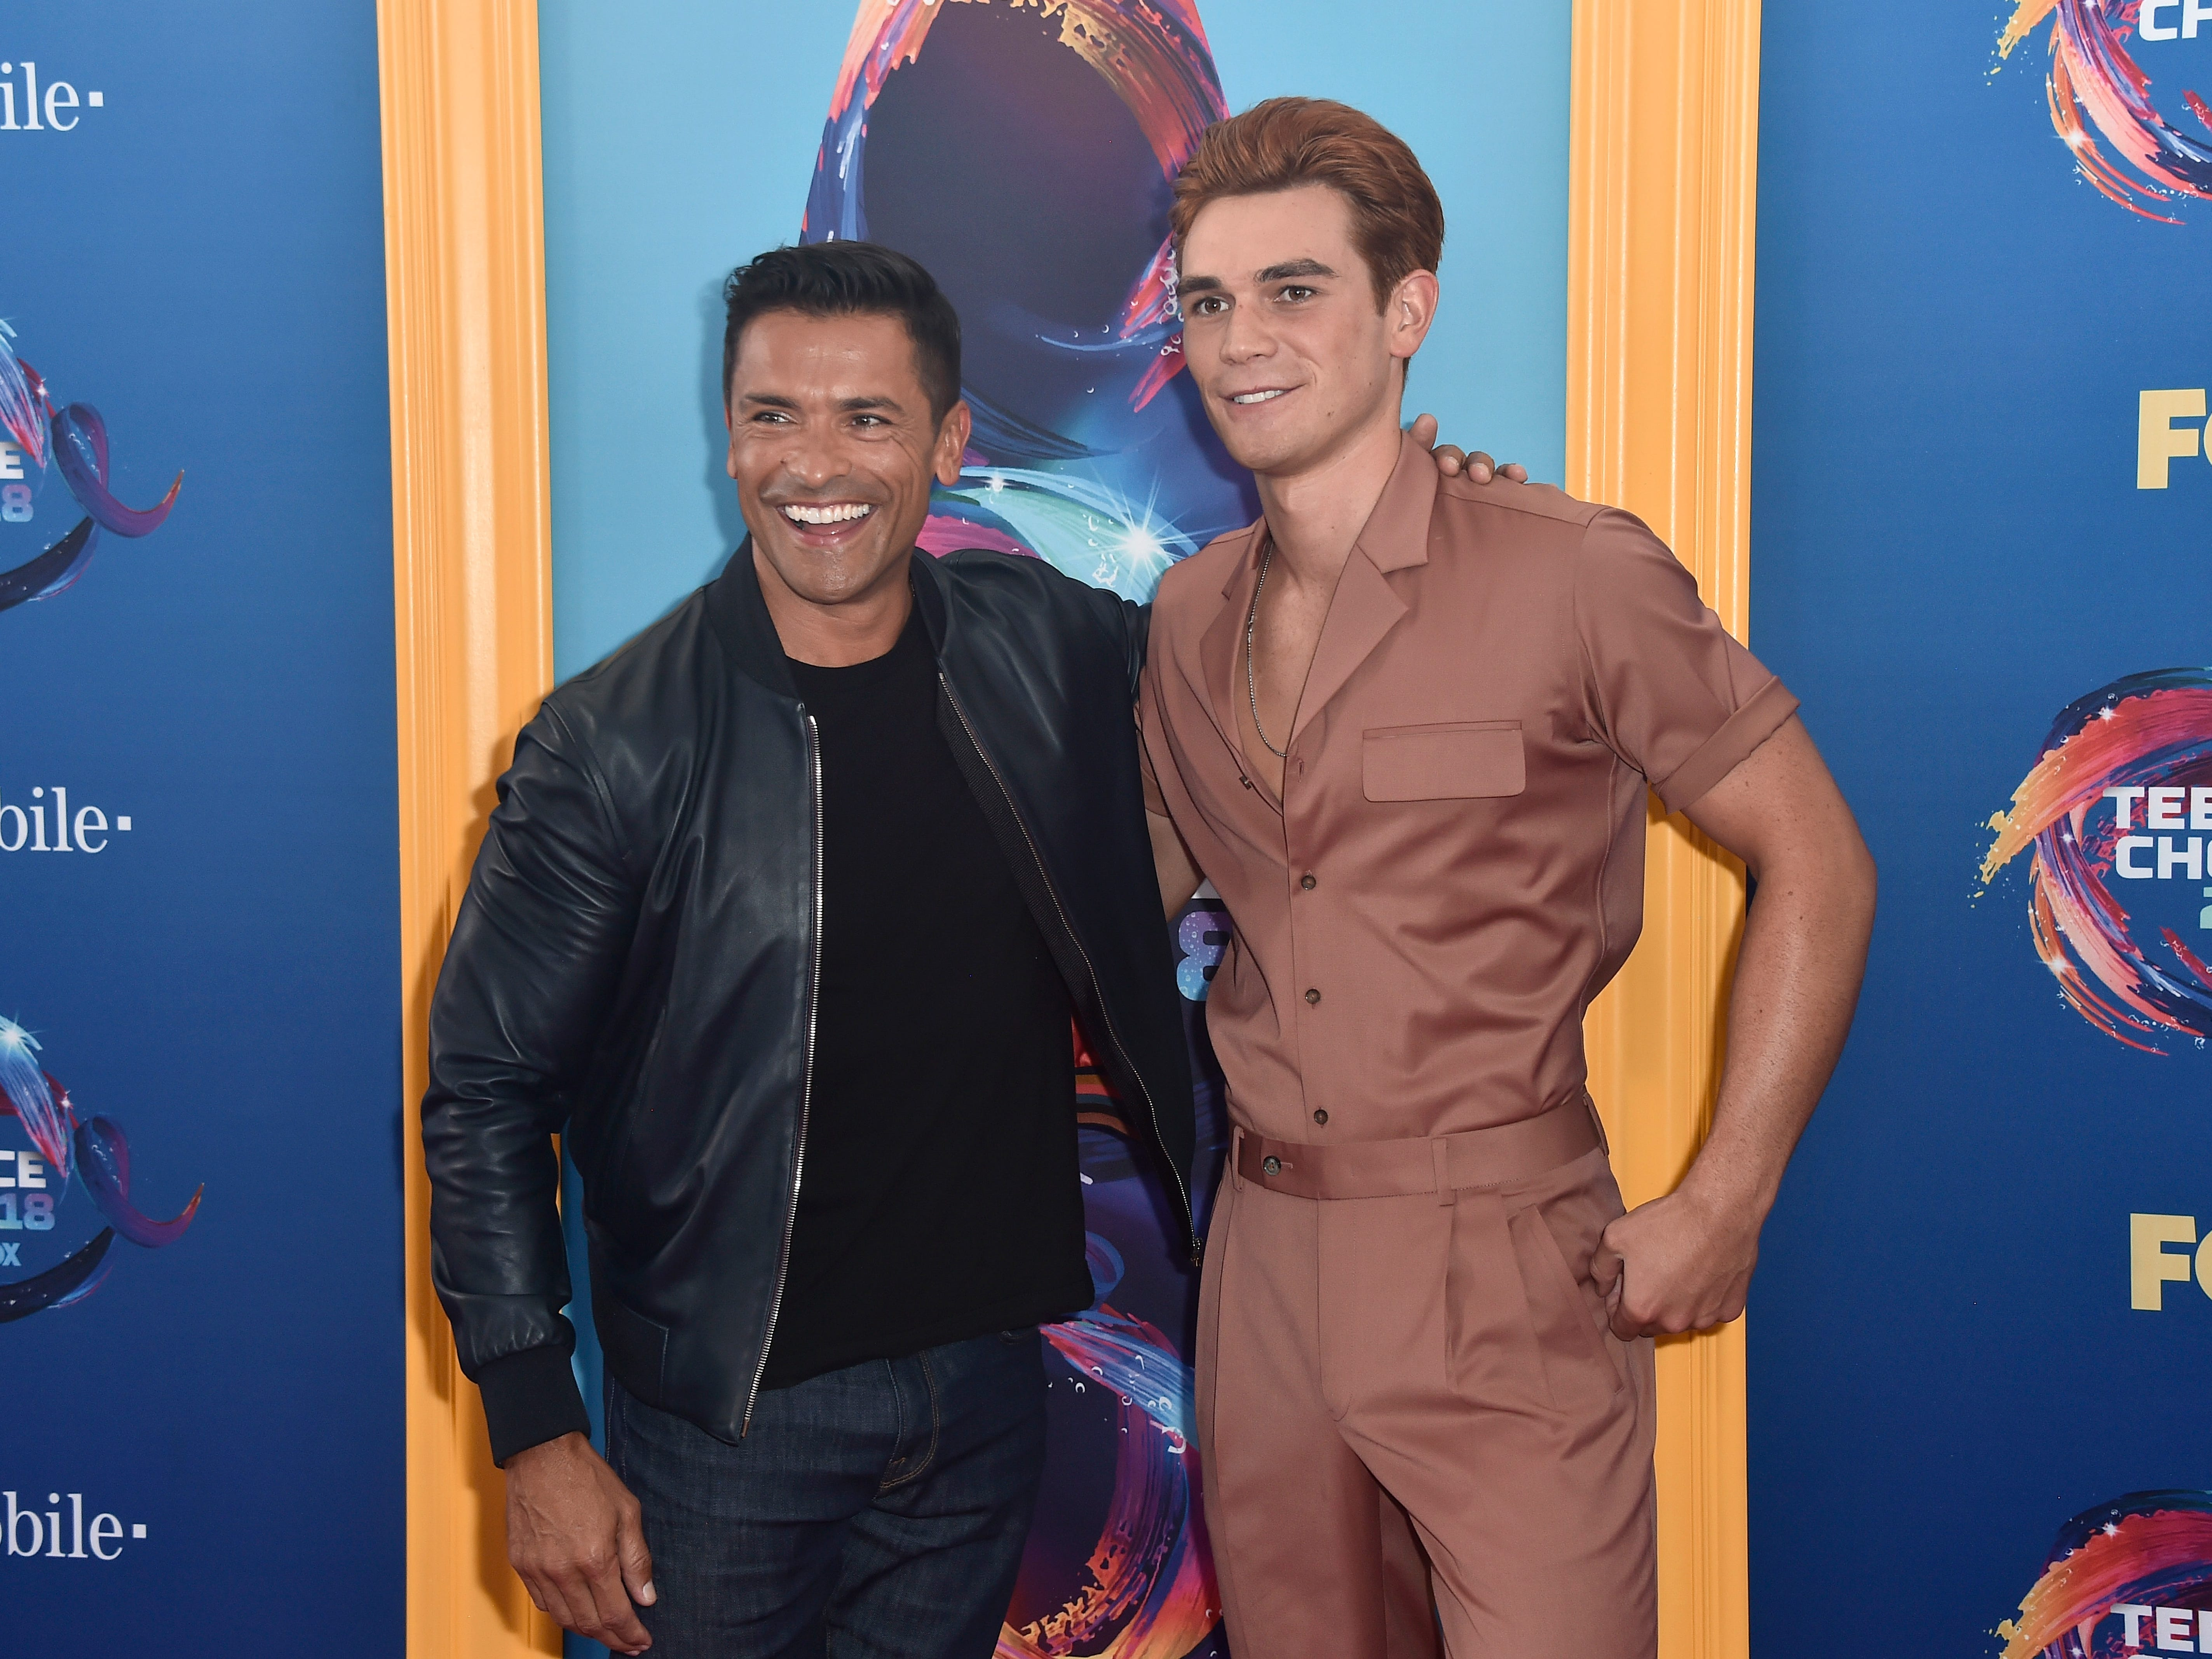 INGLEWOOD, CA - AUGUST 12:  Mark Consuelos (L) and KJ Apa attend FOX's Teen Choice Awards at The Forum on August 12, 2018 in Inglewood, California.  (Photo by Frazer Harrison/Getty Images) ORG XMIT: 775199256 ORIG FILE ID: 1015798086